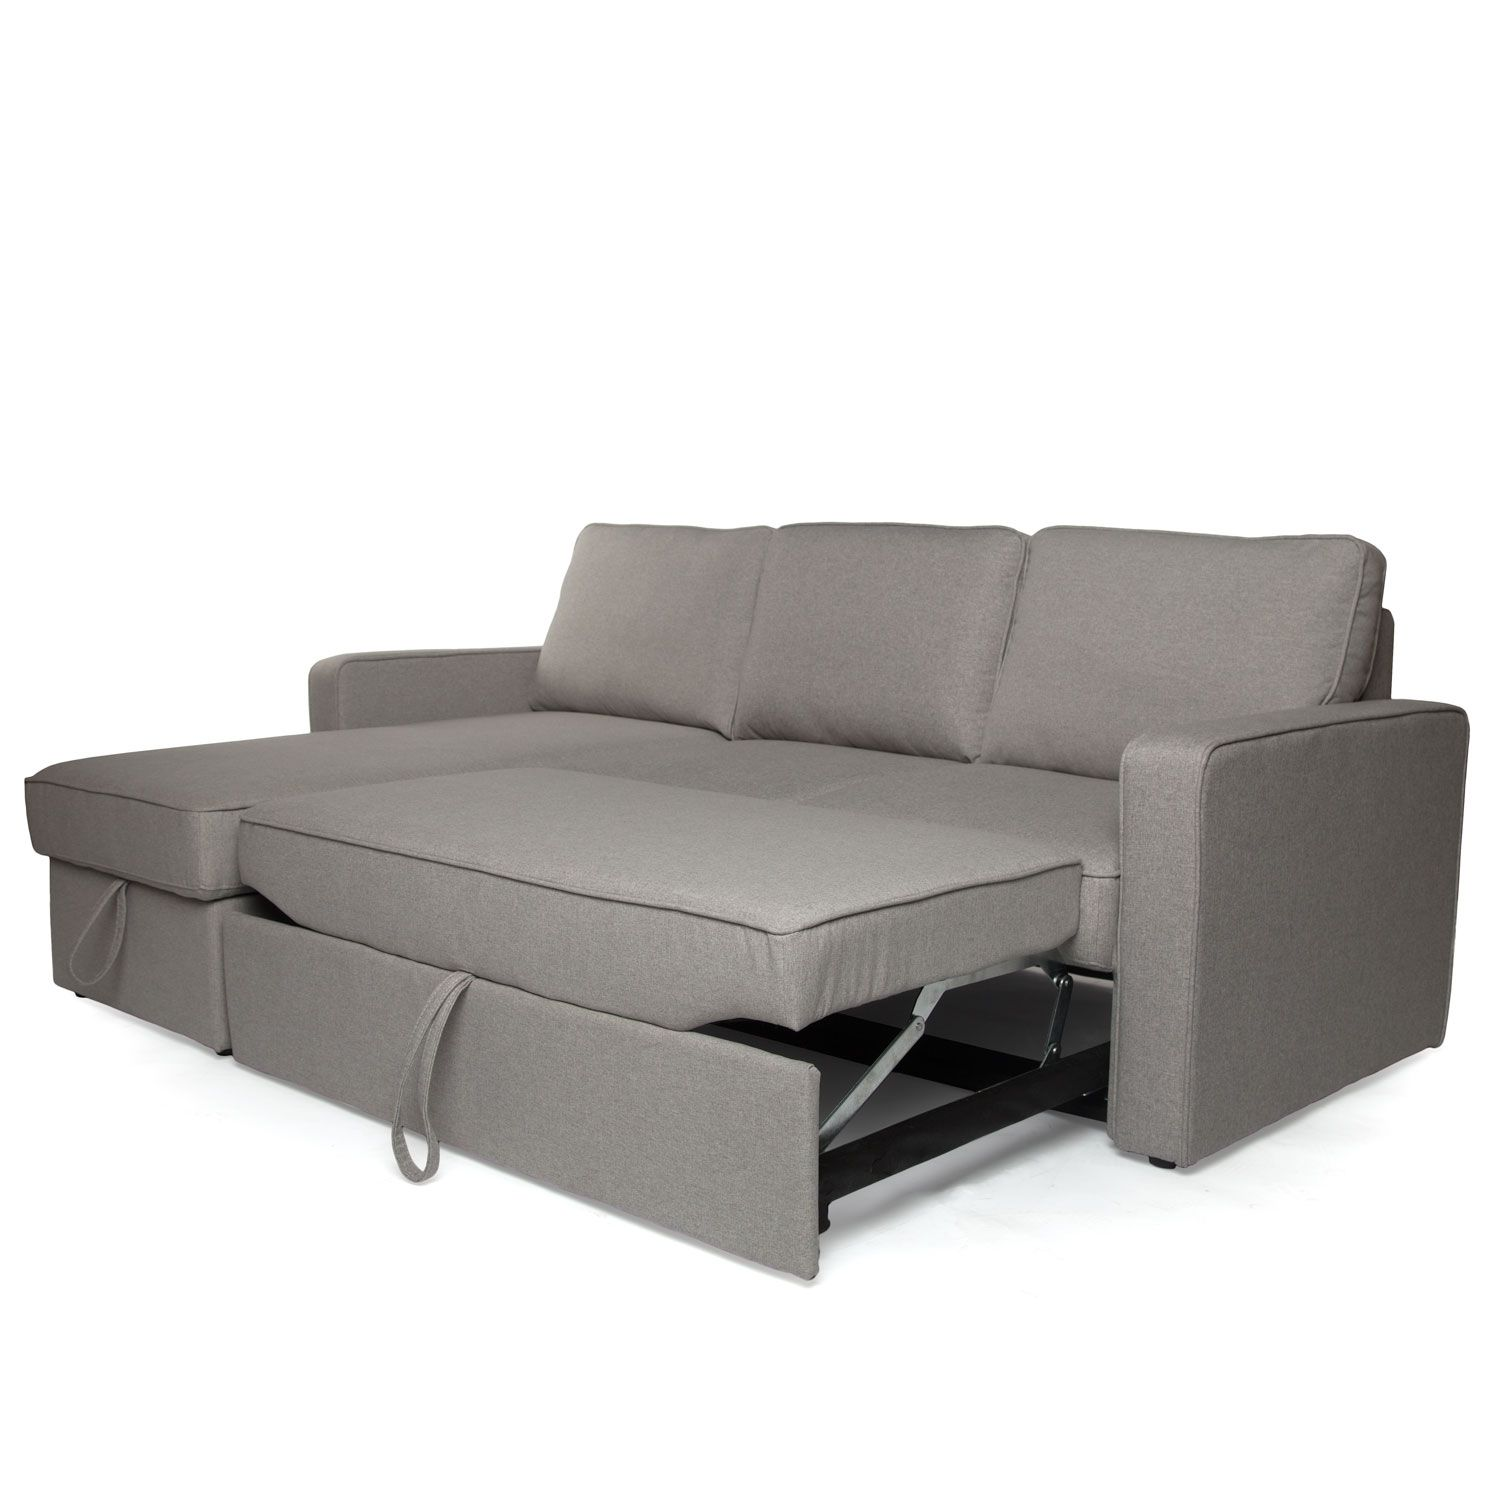 Sectional Sofa Bed With Storage Sofa Bed Sofa Bed With Storage Sofas And Chairs